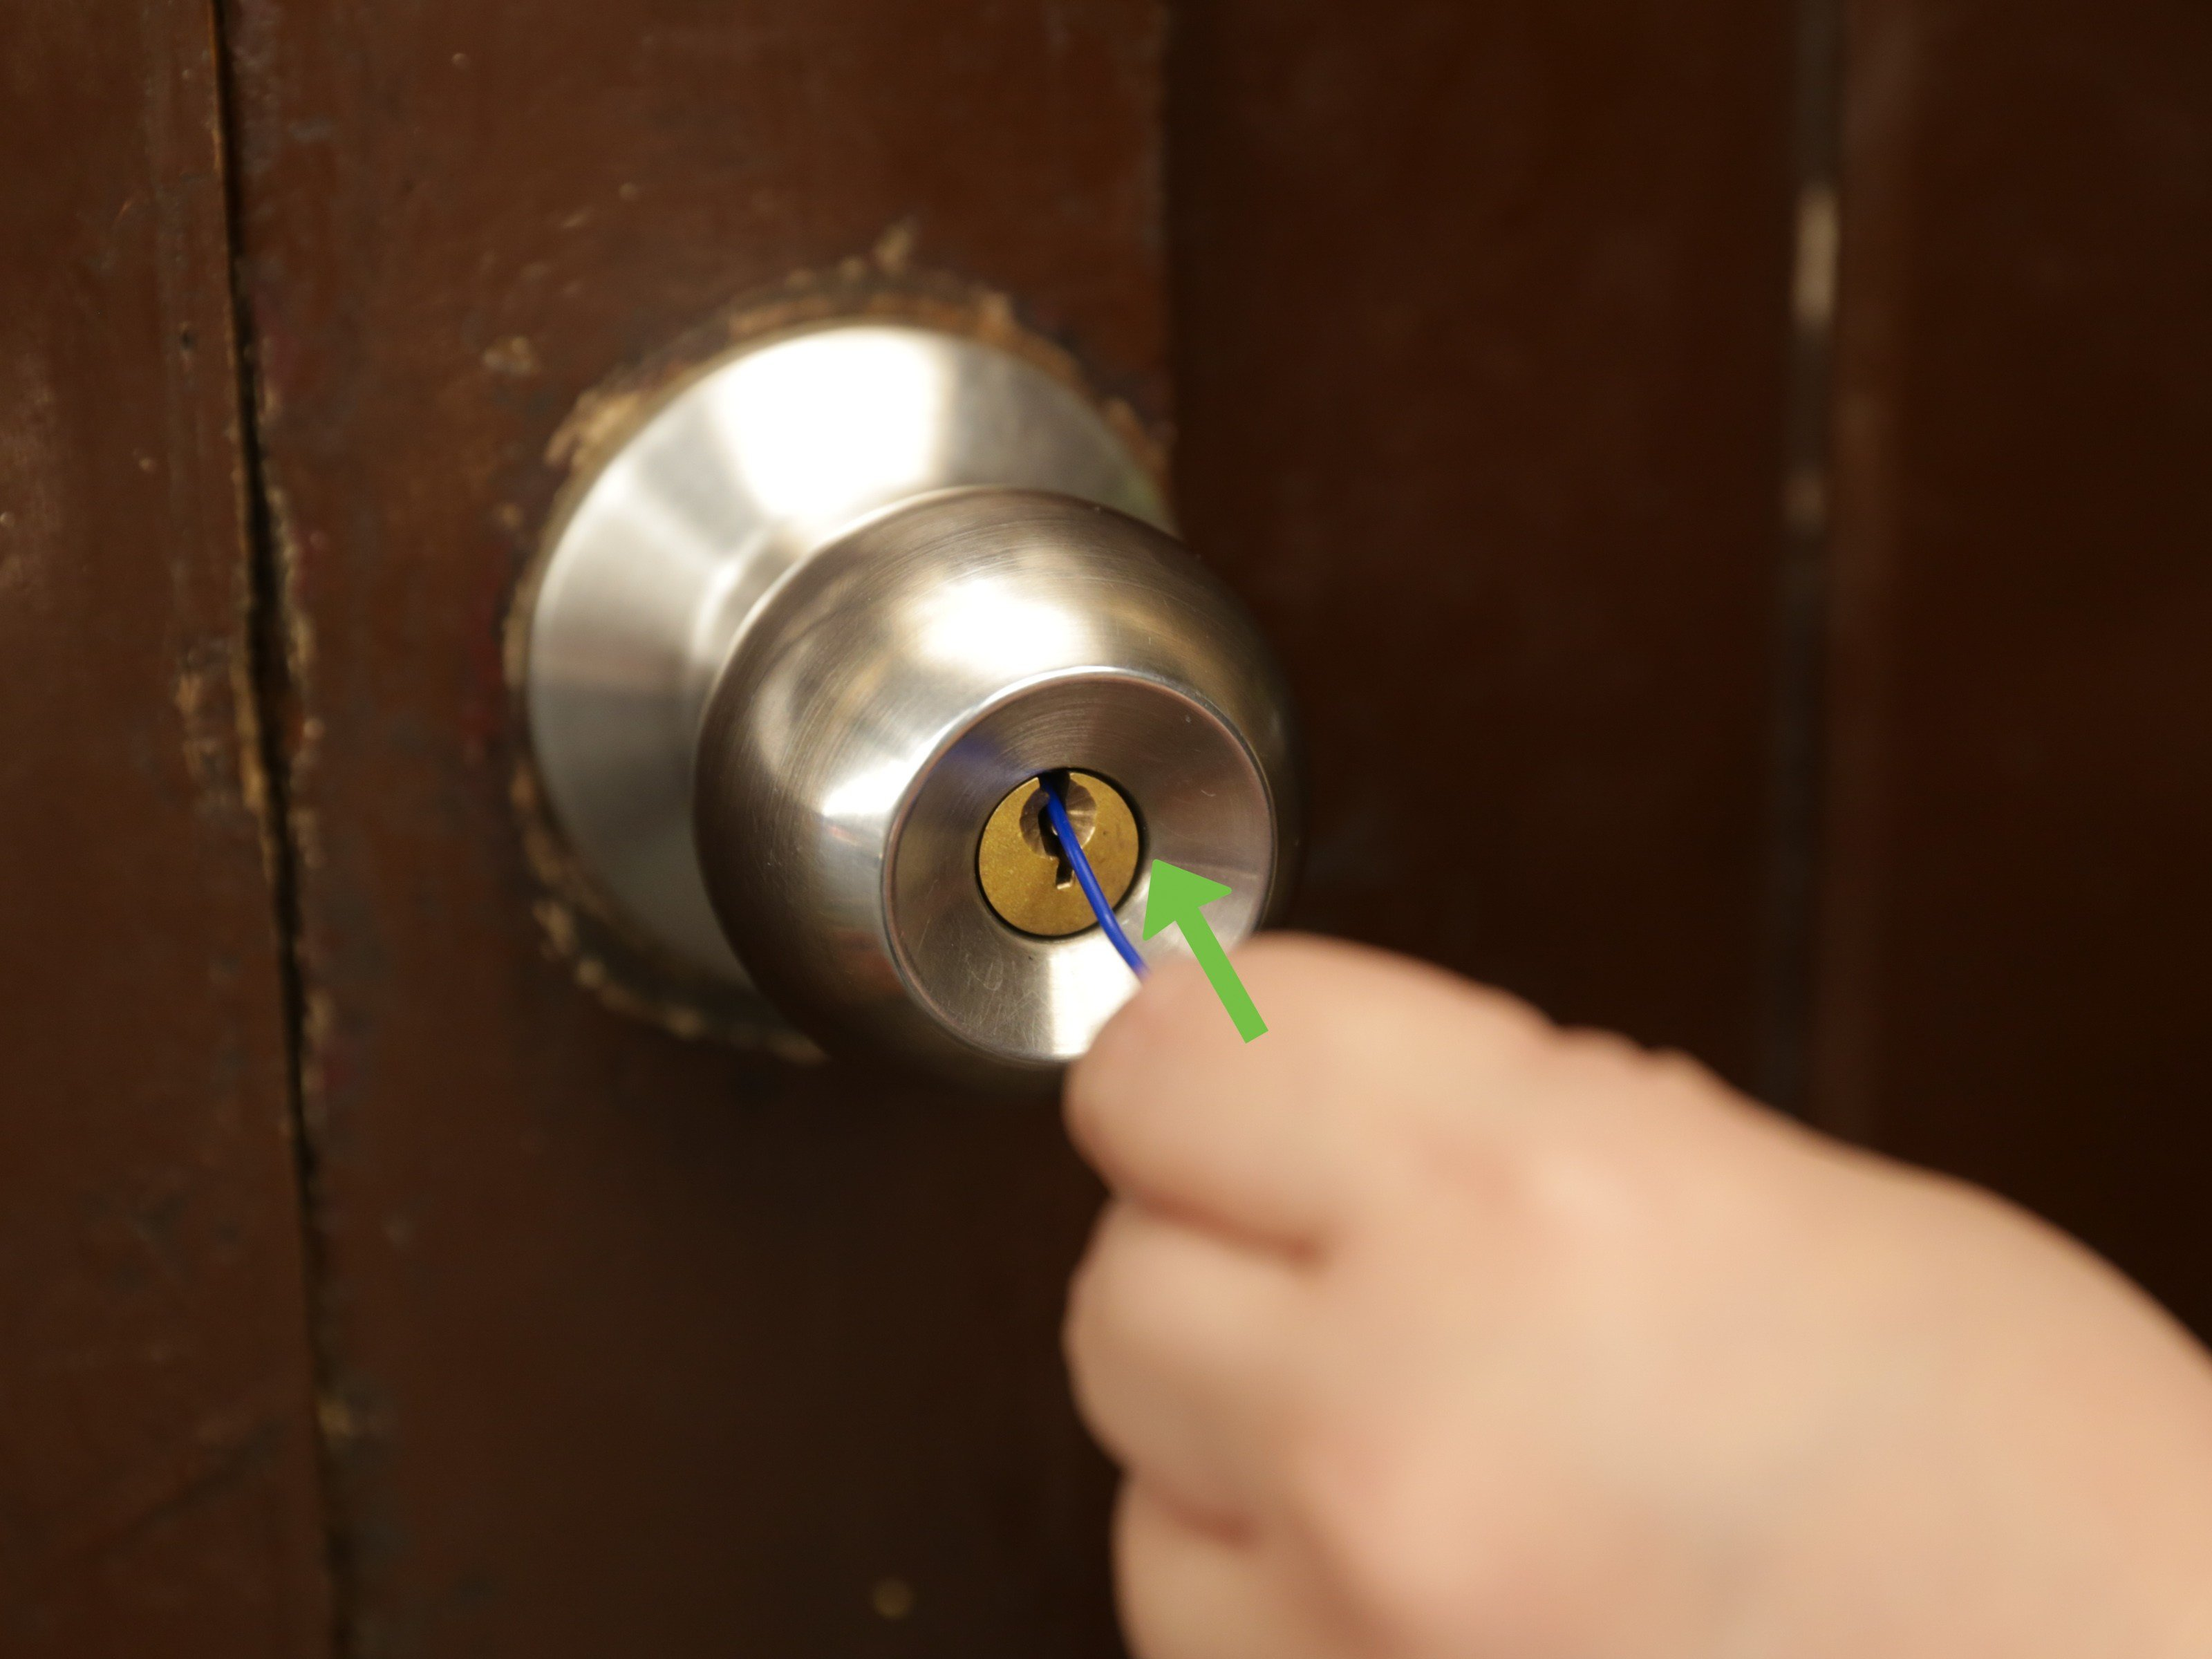 Best 3 Ways To Pick Locks On Doorknobs Wikihow With Pictures